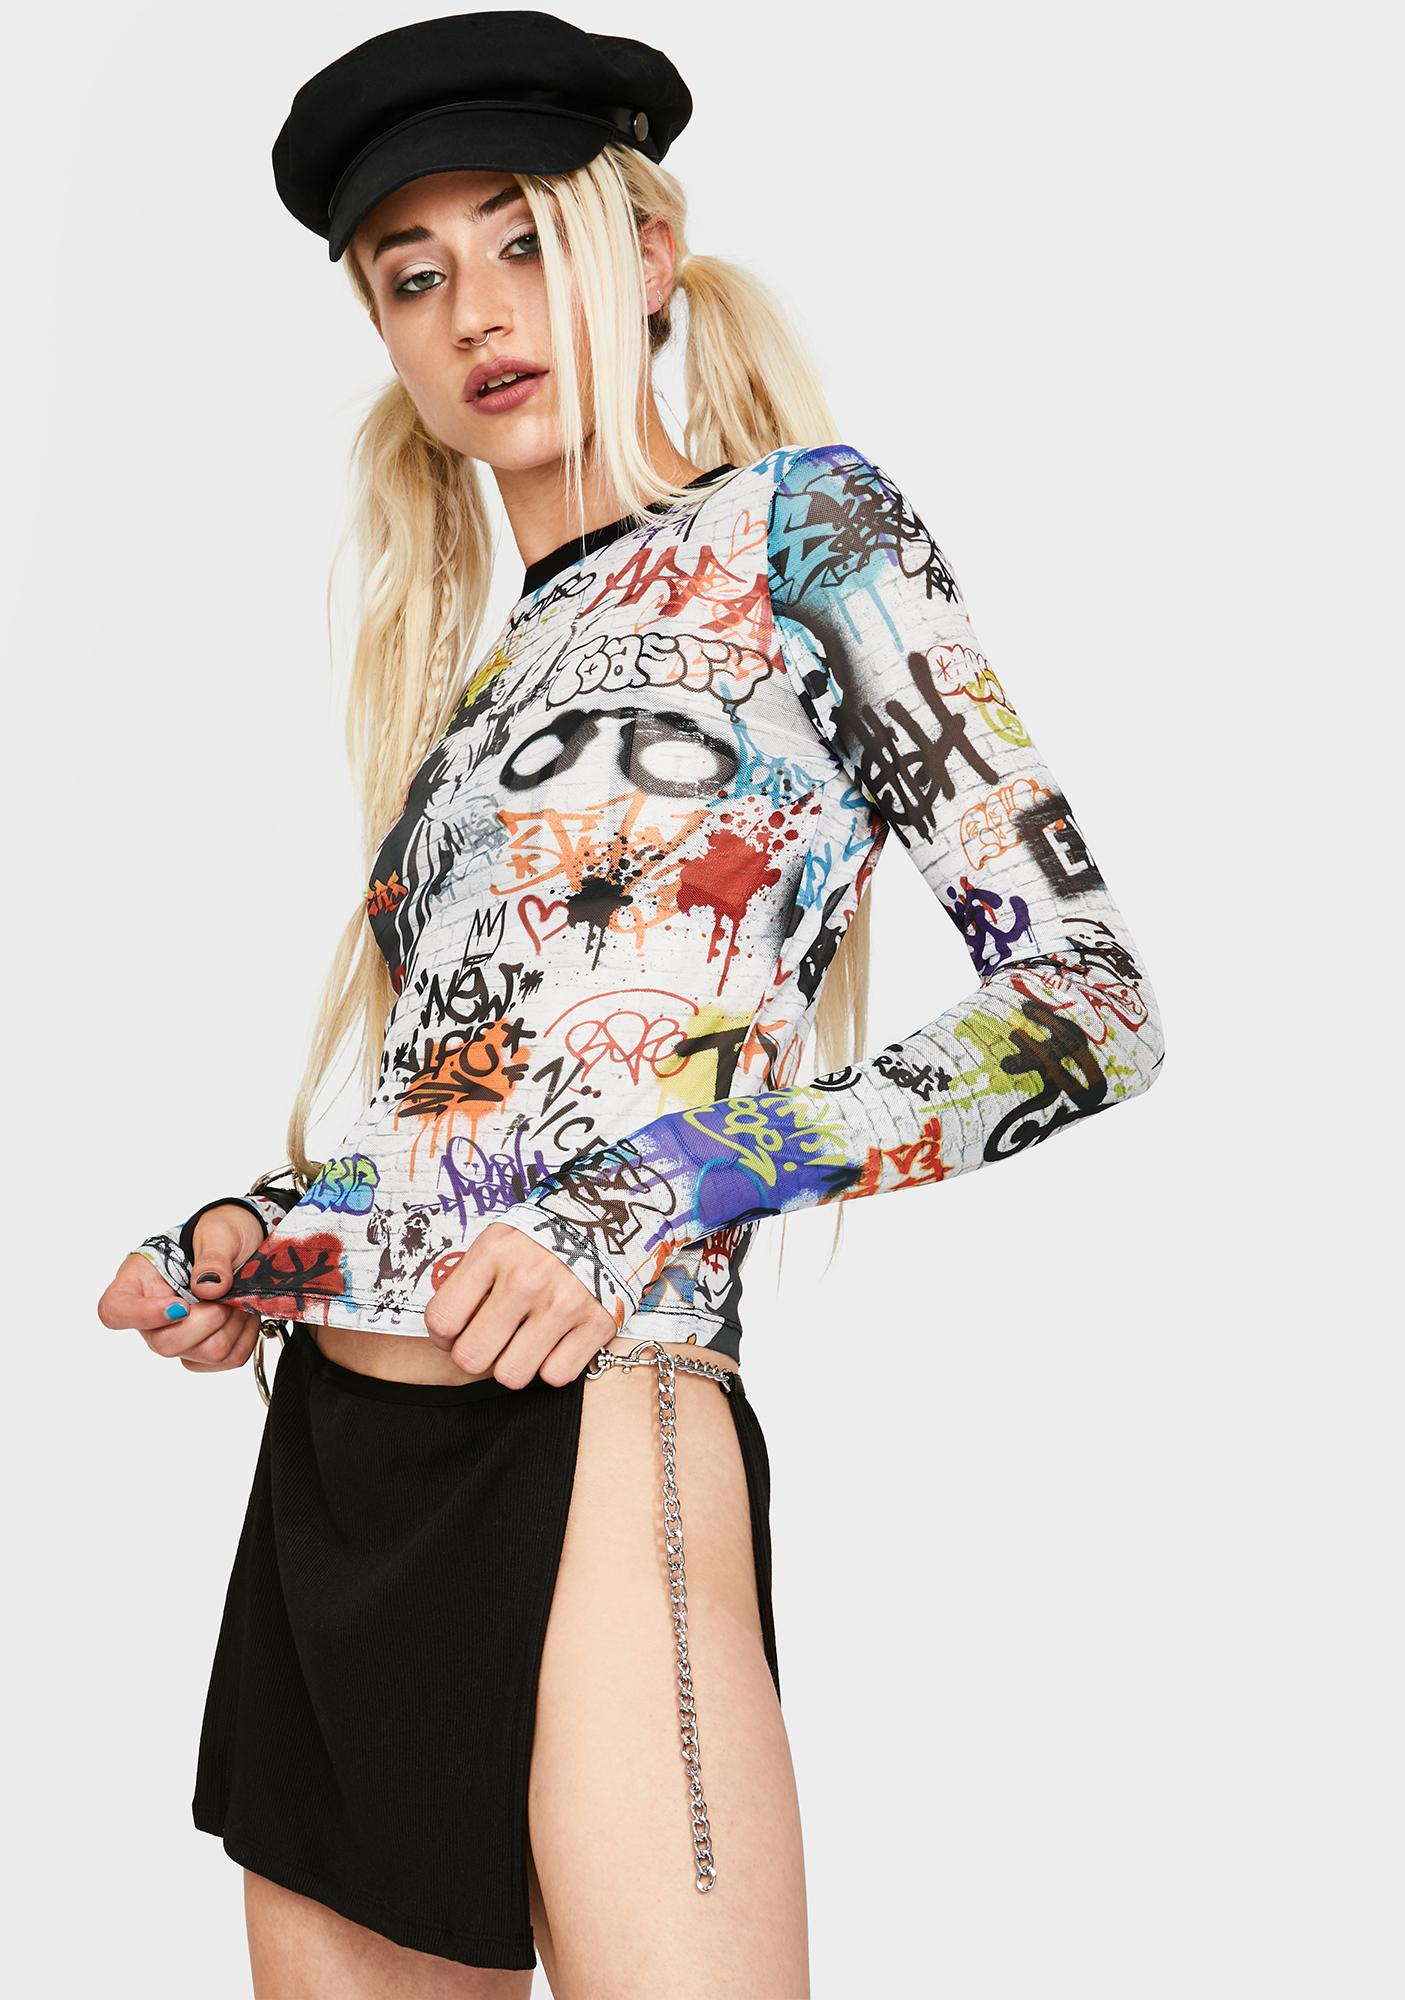 Current Mood Writing's On The Wall Mesh Top